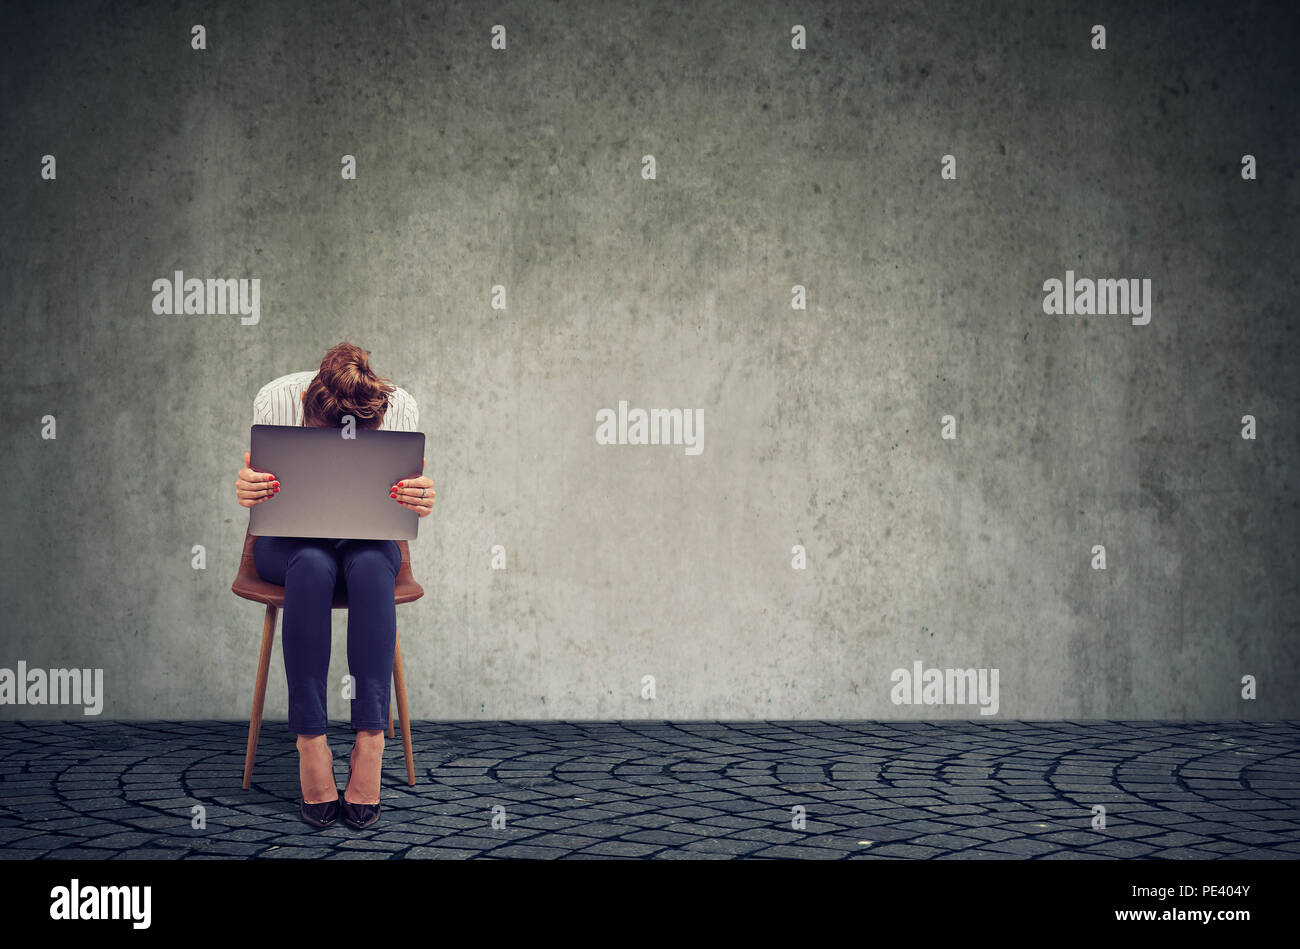 Anonymous woman sitting on chair with laptop on knees and looking desperate in crisis against gray wall background - Stock Image